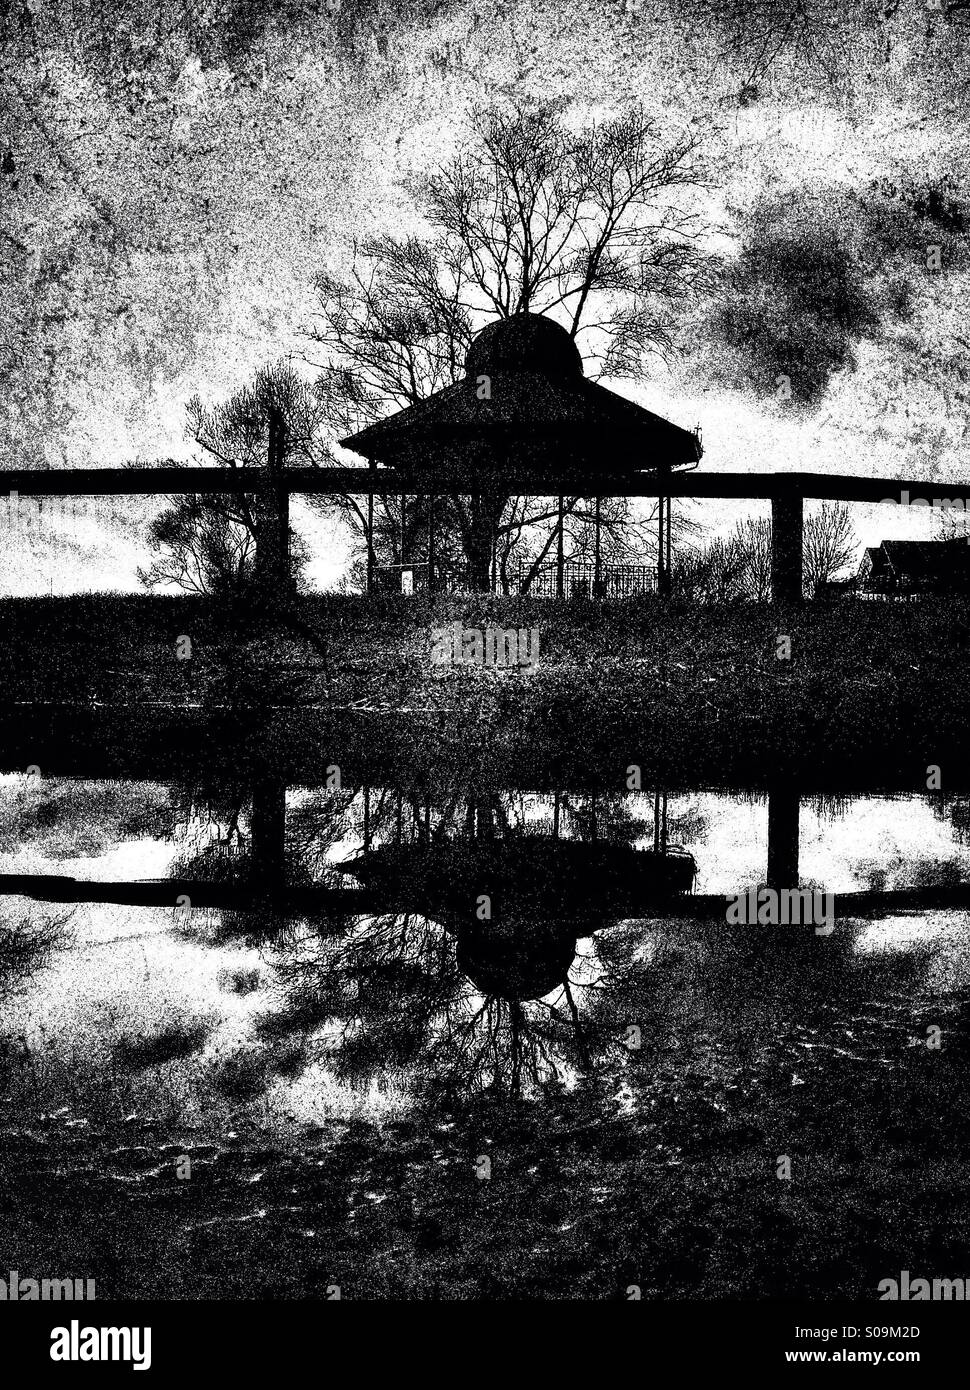 Bandstand reflections on a puddle - Stock Image